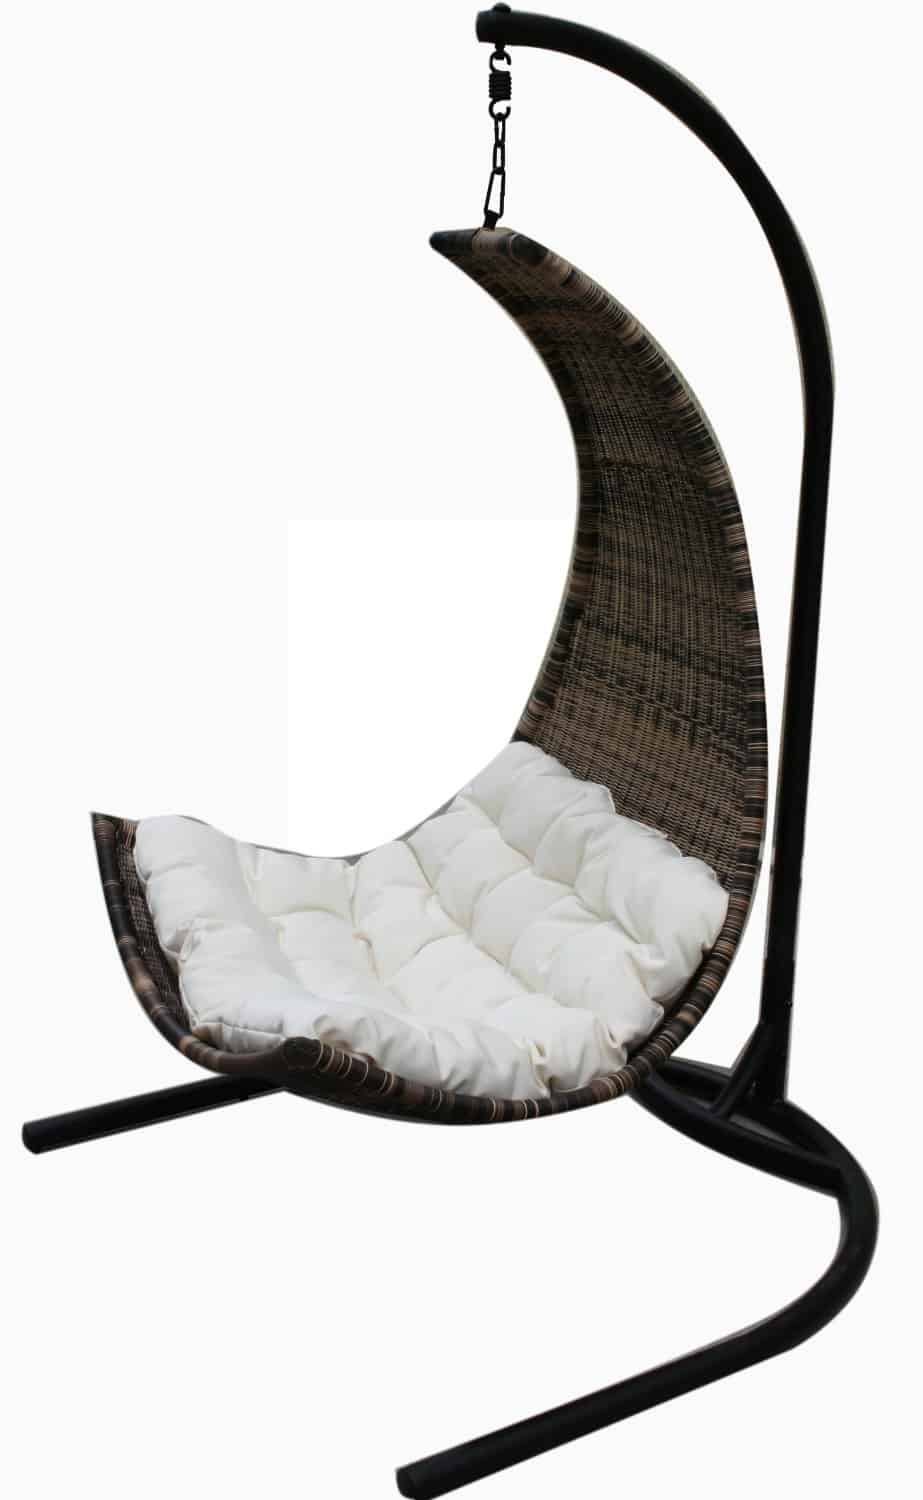 Thais Balance Curve Porch Swing Chair Hanging Outdoor Furniture